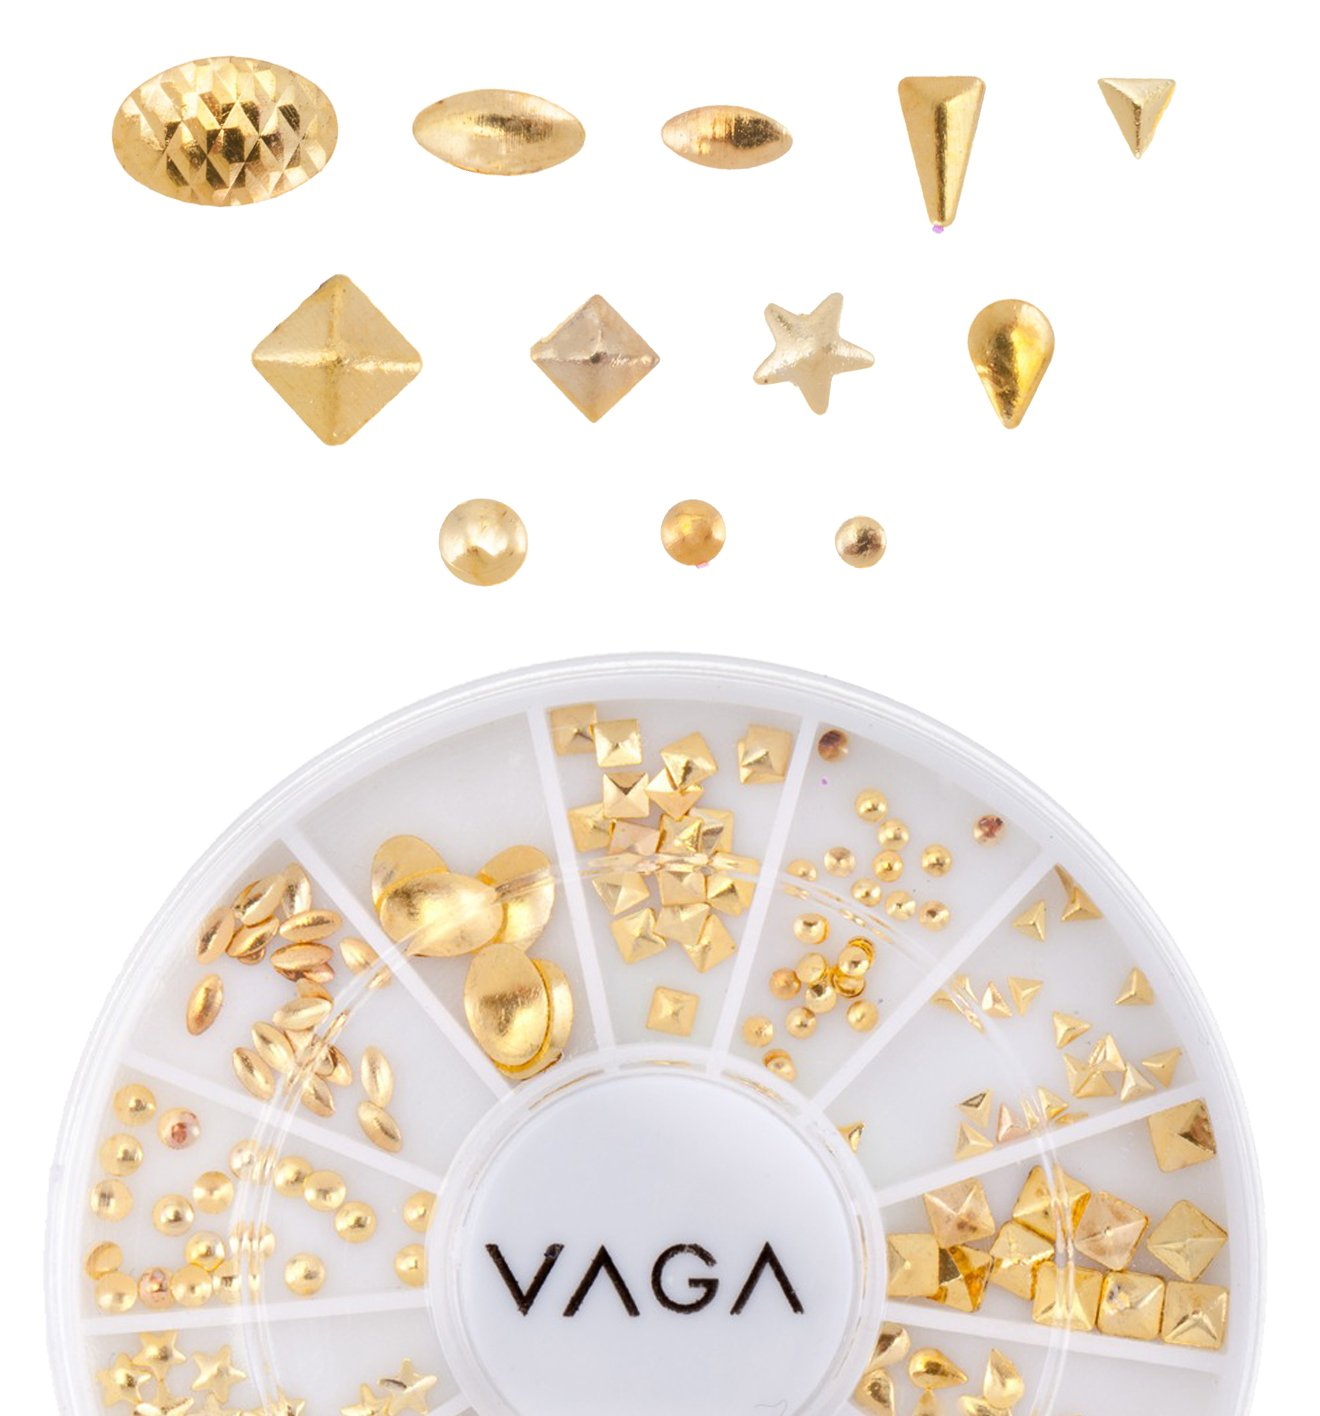 Professional High Quality Manicure And Nail Art 3D Decorations Wheel With Golden Nailart Metal Studs In 12 Different Hollowed Shapes By VAGA